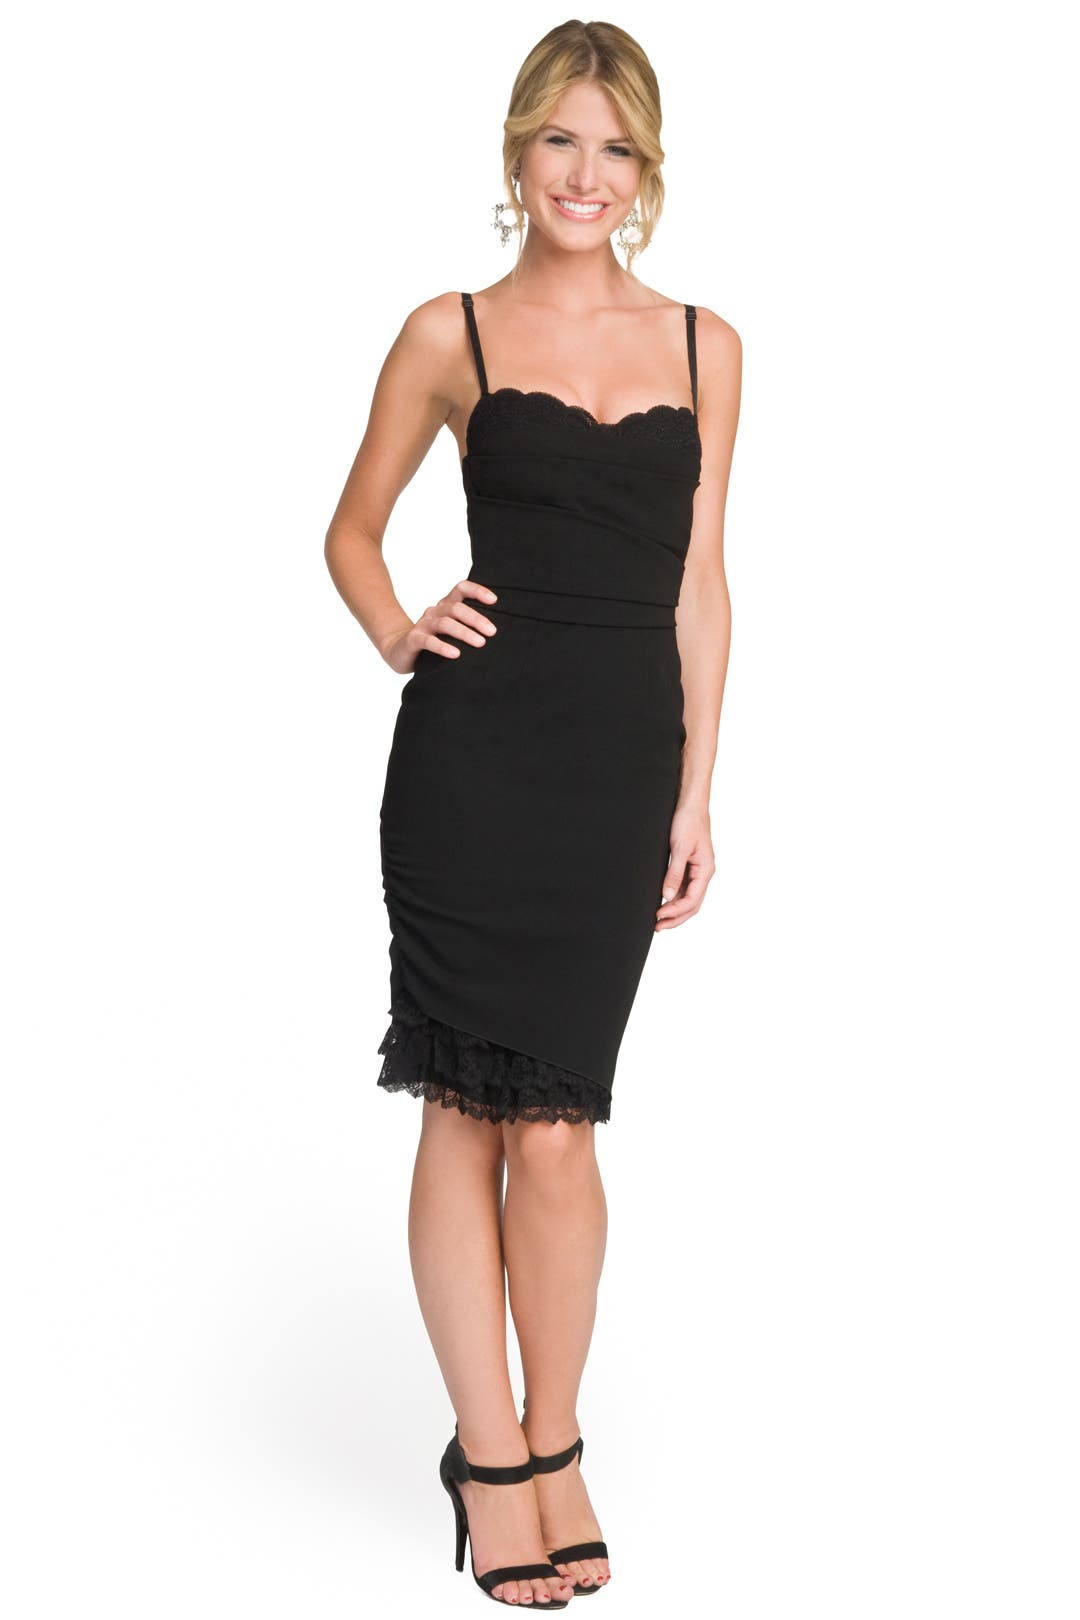 Death by Seduction Dress by Moschino Cheap And Chic